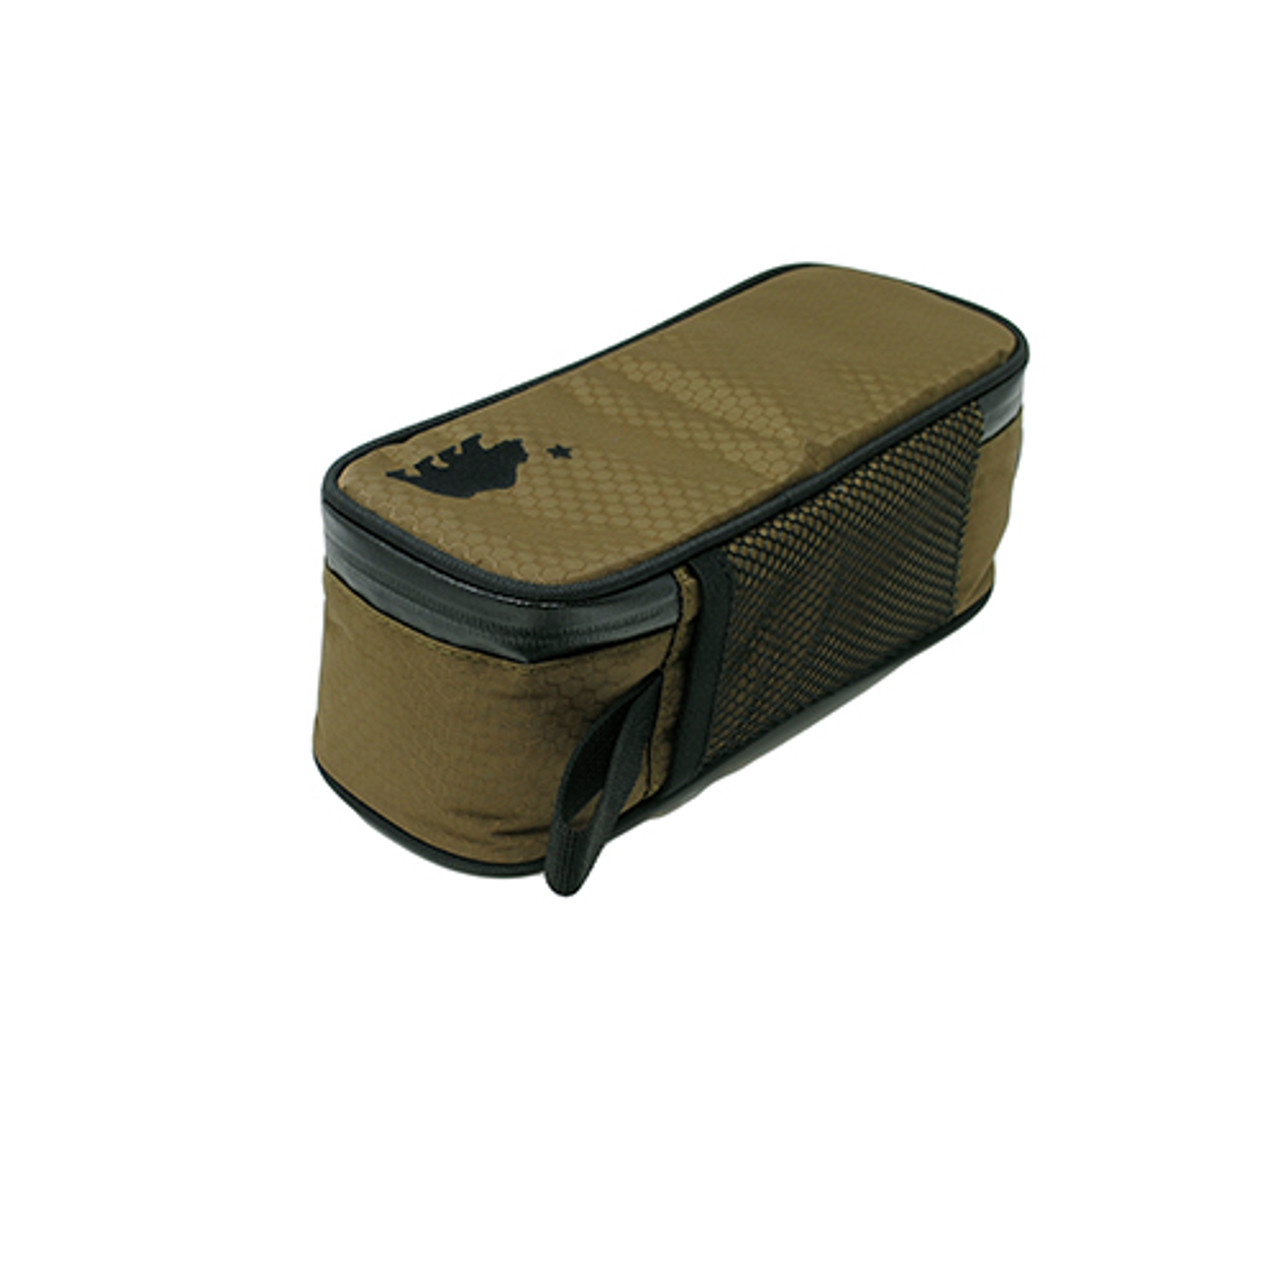 Cali Crusher Soft Case